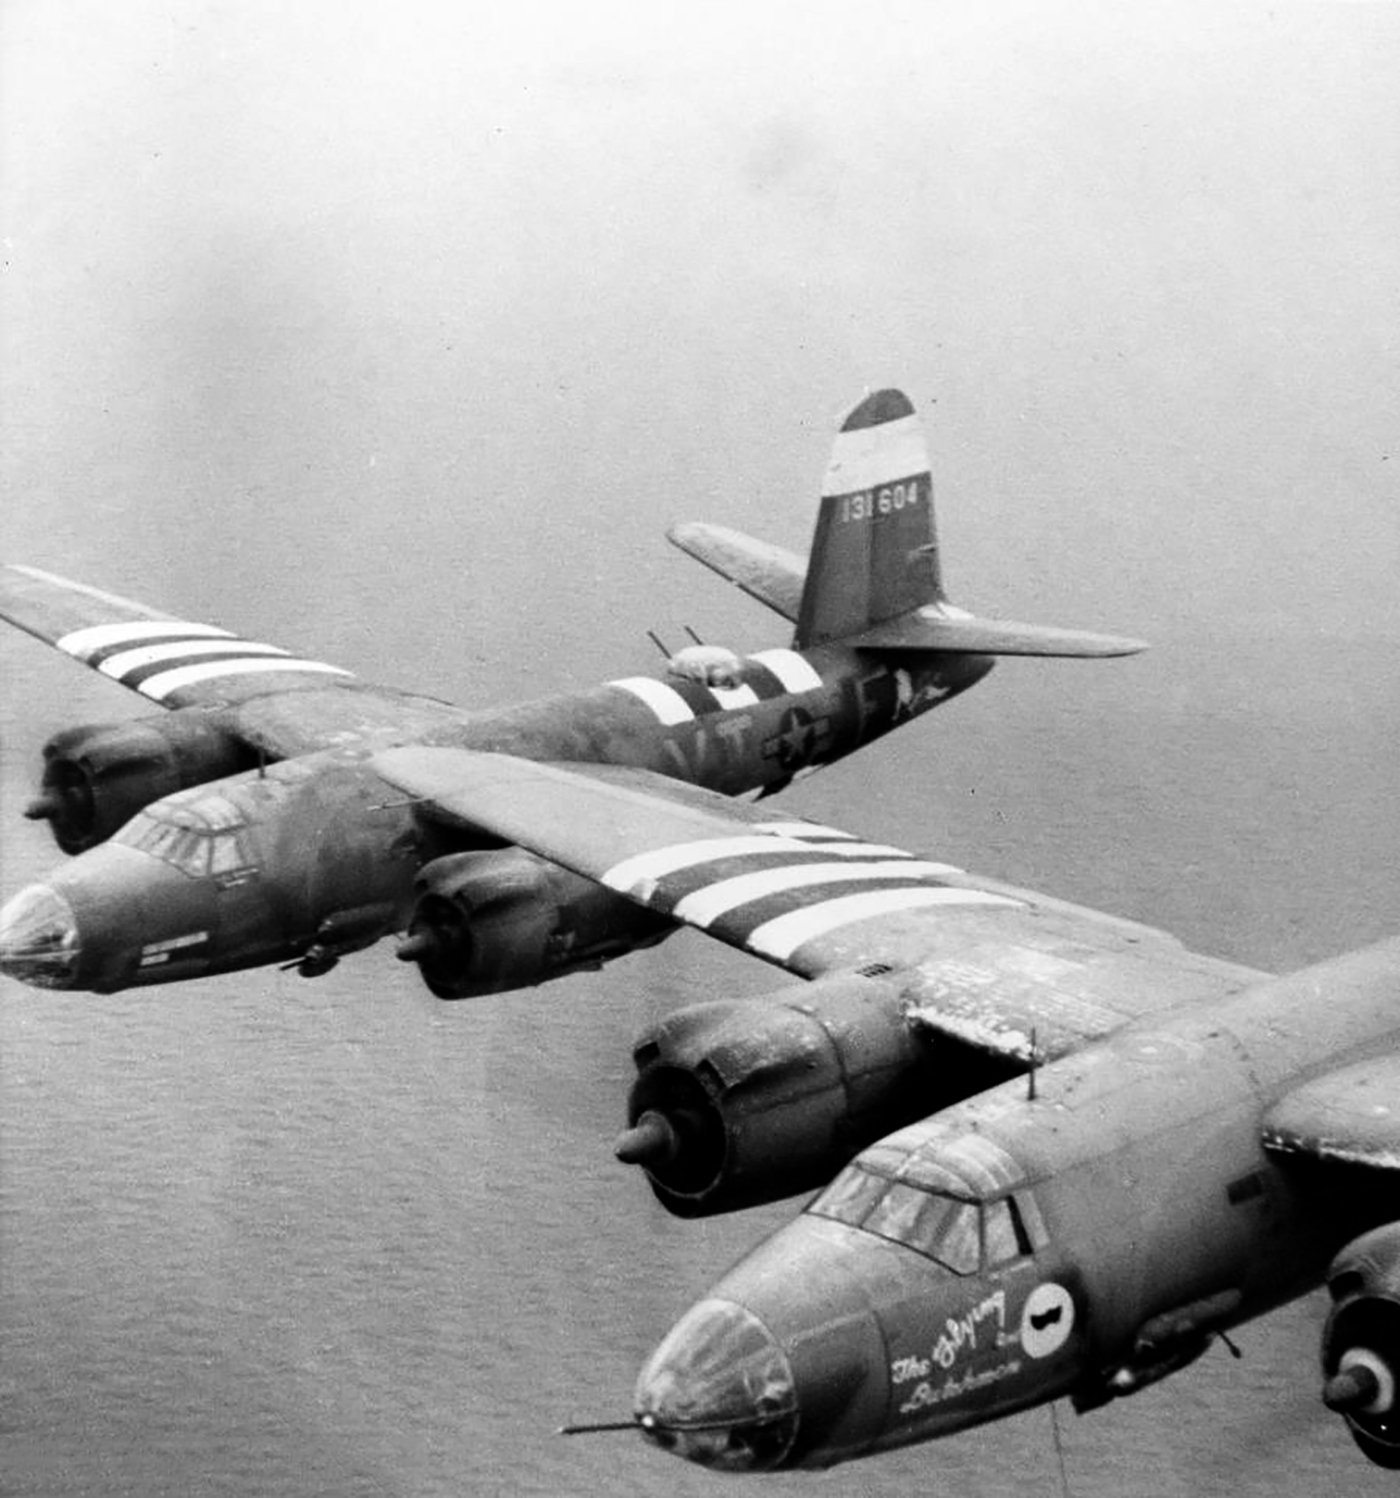 USAAF 41 31826 B 26B Marauder 323BG453BS VTM Flying Dutchman II over the channel 01